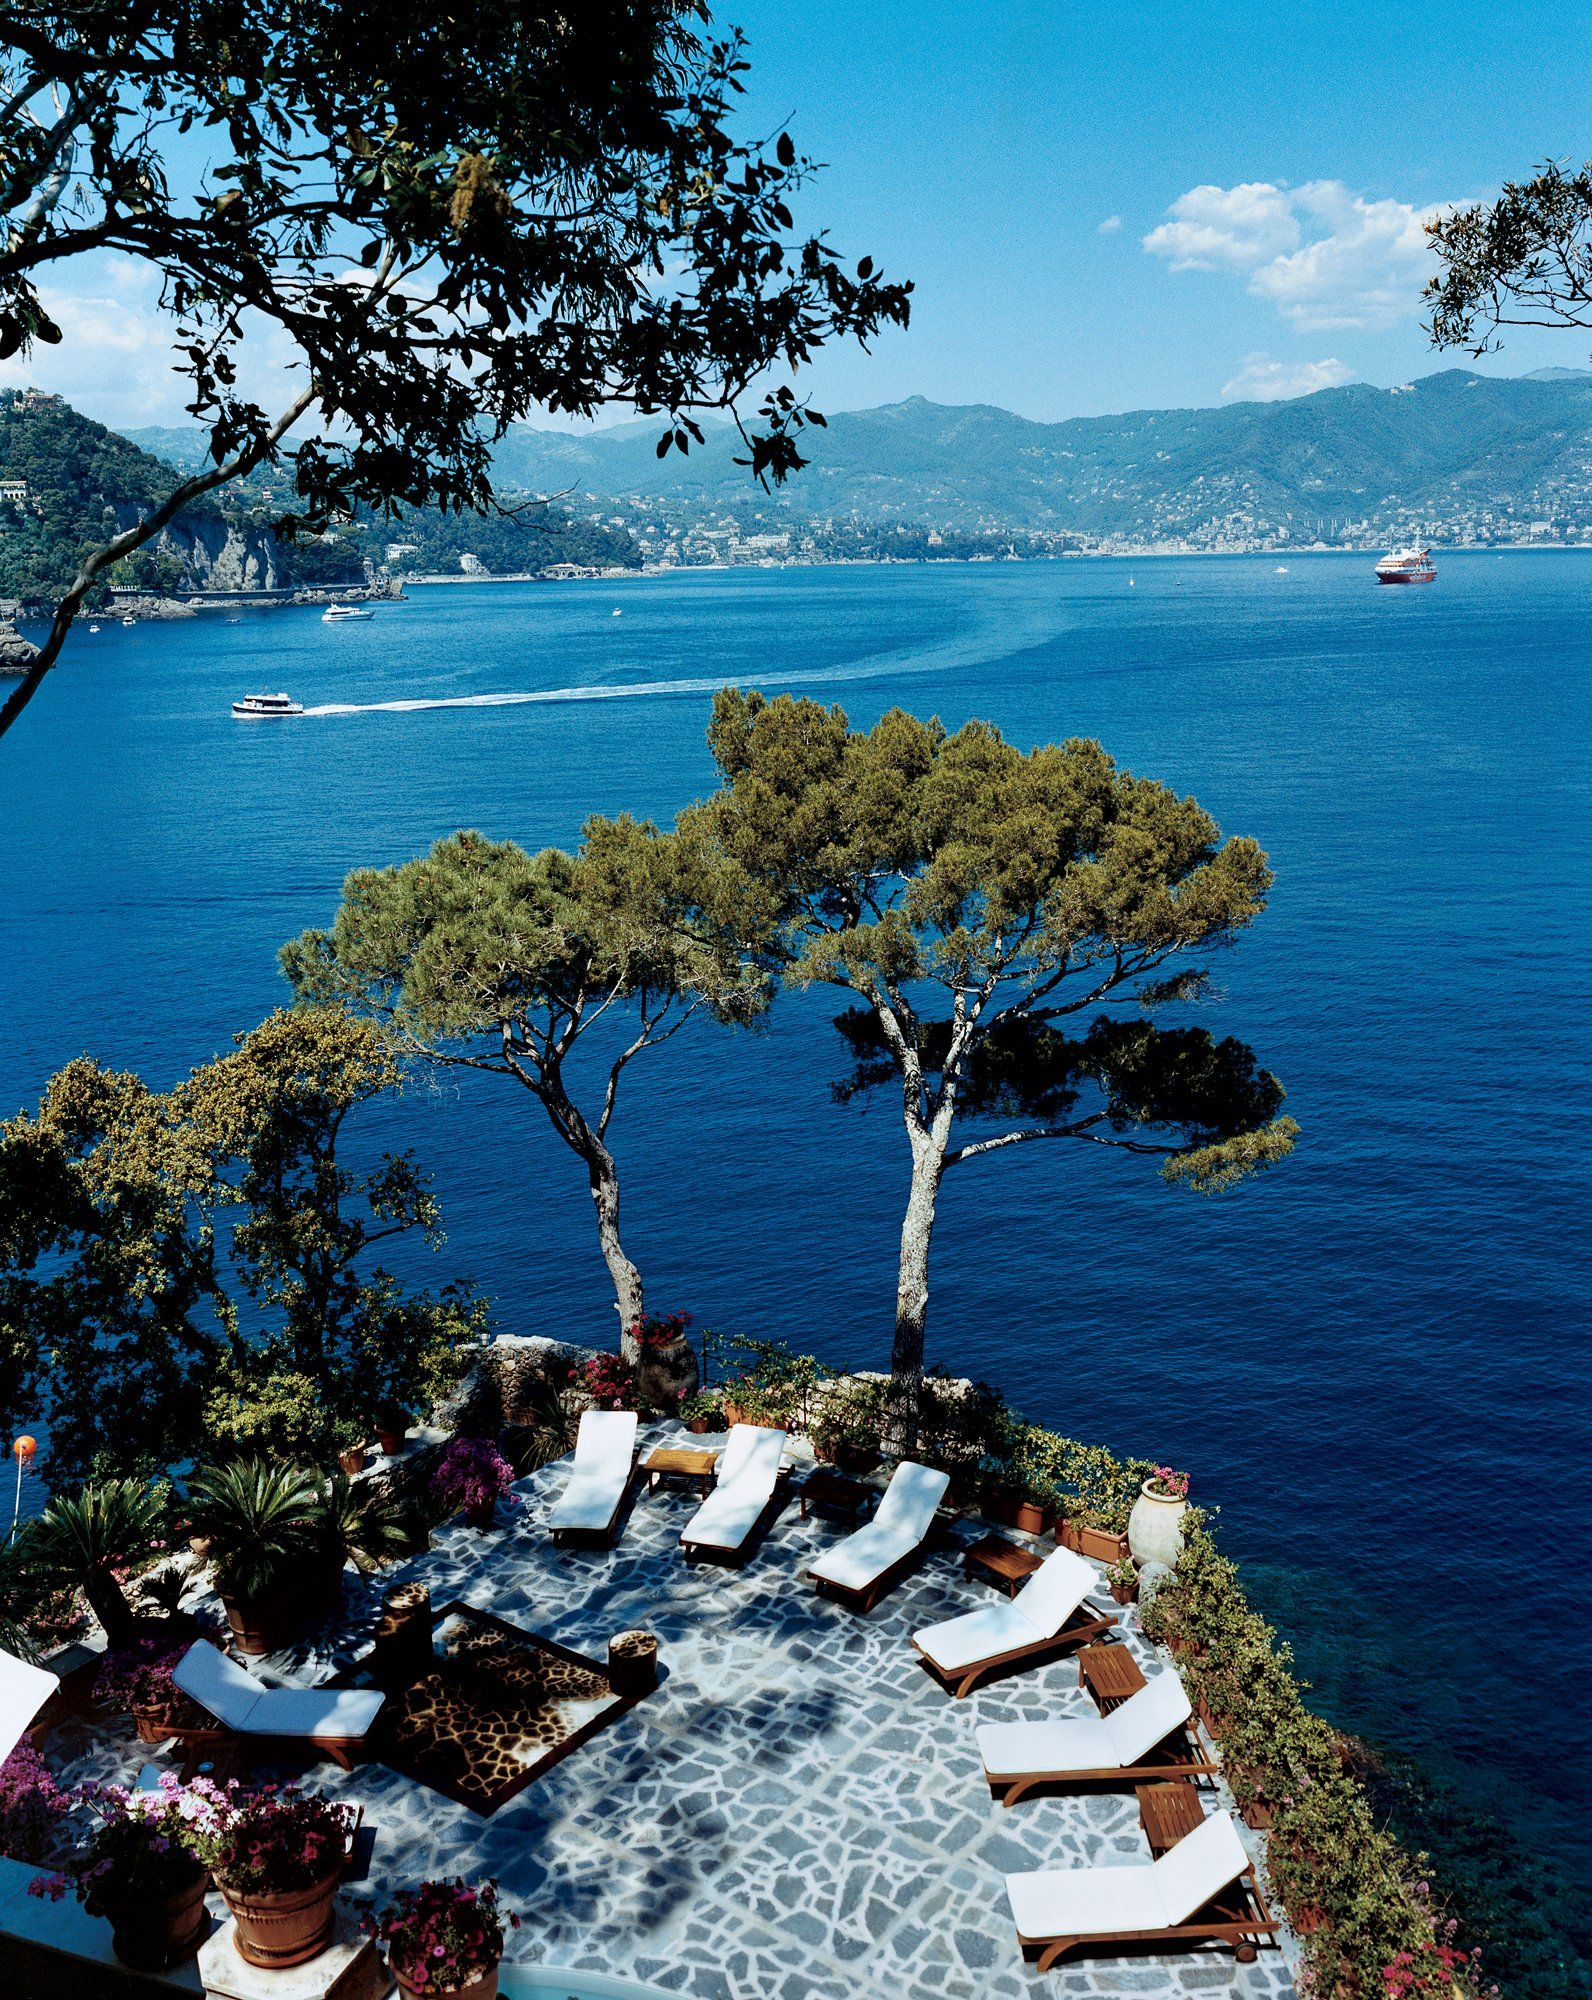 The terrace of Domenico Dolce and Stefano Gabbana's Portofino home, Villa…